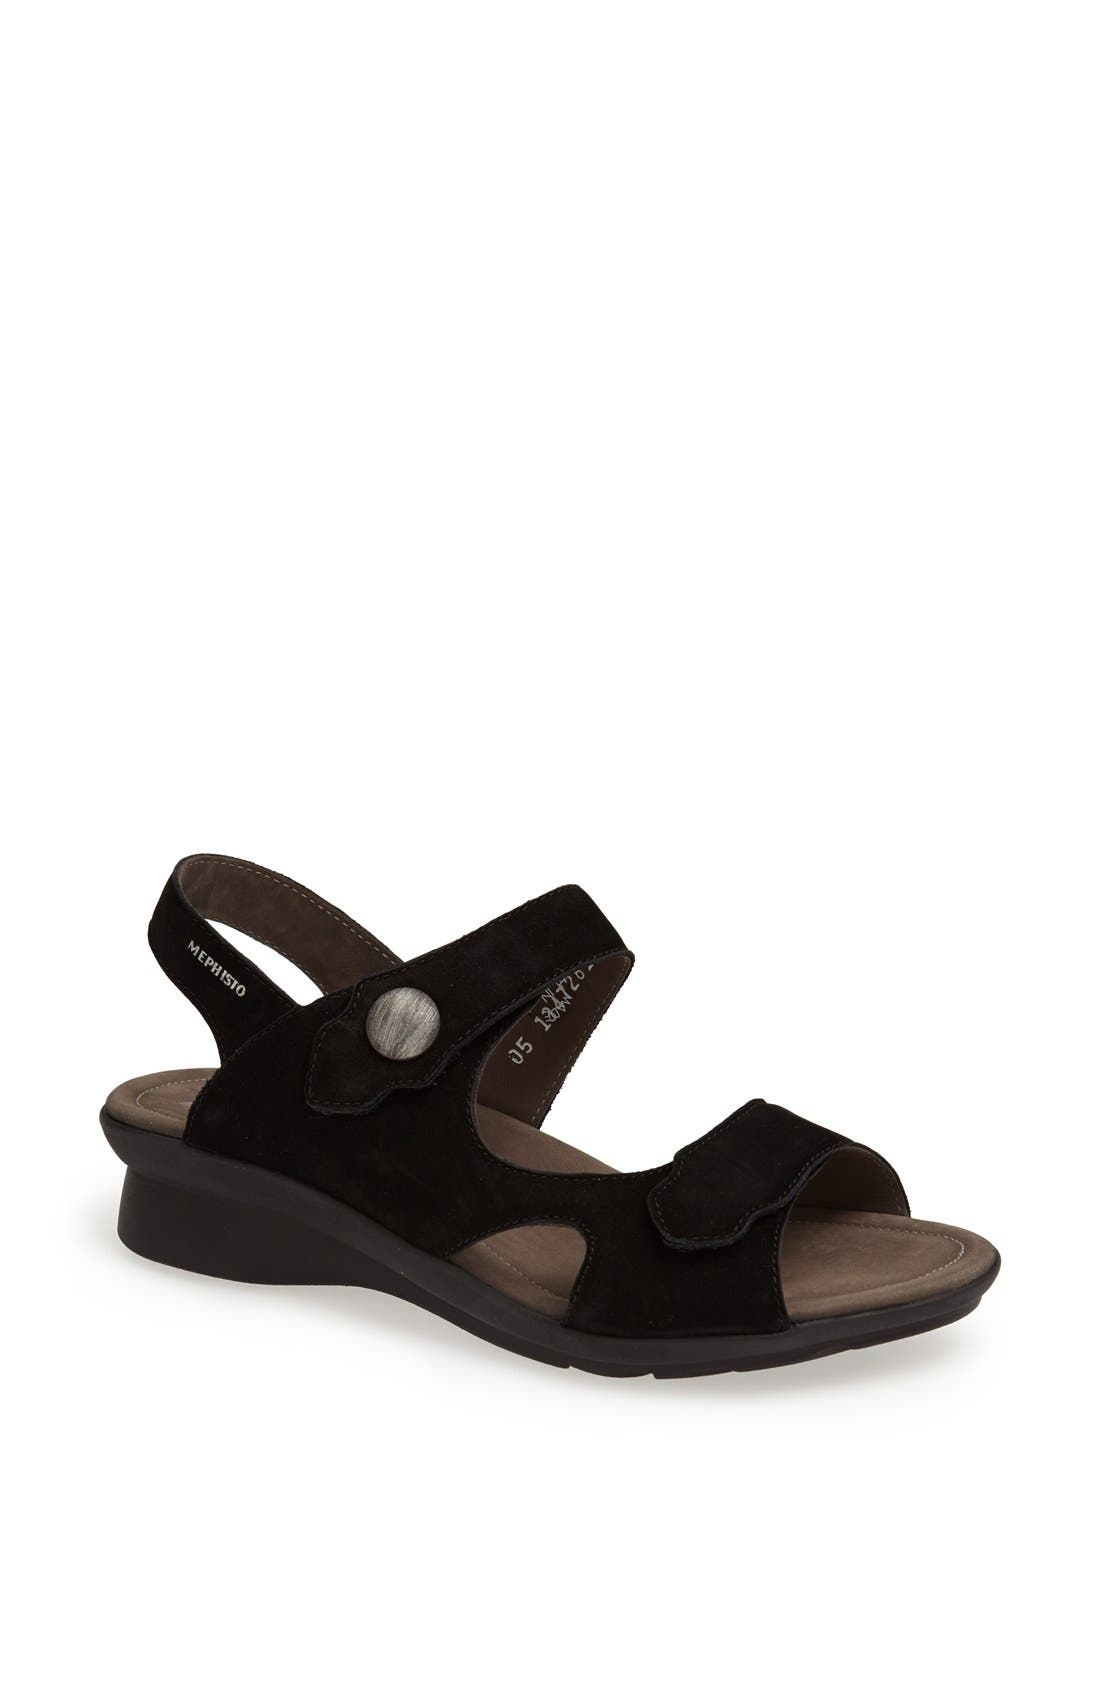 MEPHISTO, 'Prudy' Leather Sandal, Main thumbnail 1, color, BLACK NUBUCK LEATHER